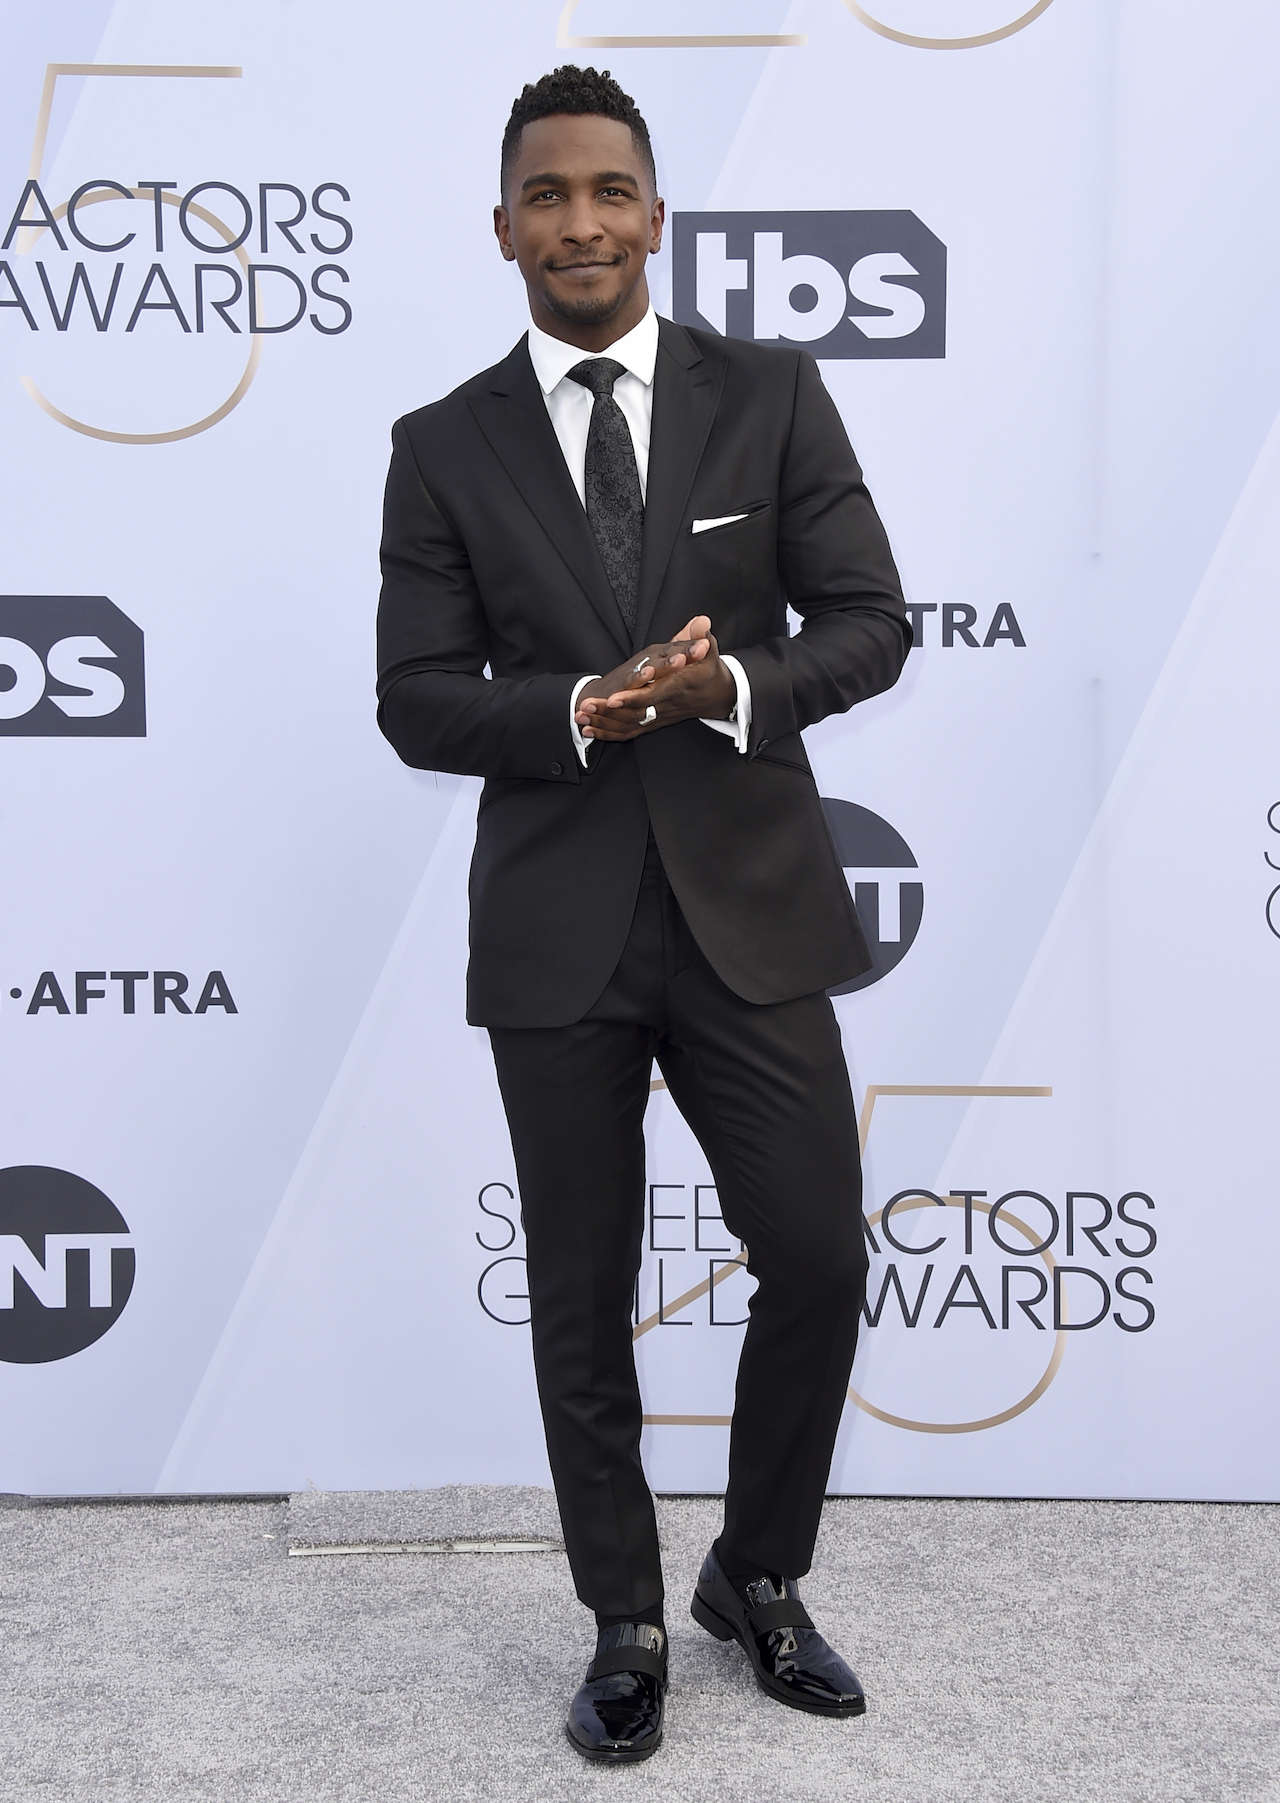 <div class='meta'><div class='origin-logo' data-origin='AP'></div><span class='caption-text' data-credit='Jordan Strauss/Invision/AP'>Scott Evans arrives at the 25th annual Screen Actors Guild Awards at the Shrine Auditorium & Expo Hall on Sunday, Jan. 27, 2019, in Los Angeles.</span></div>